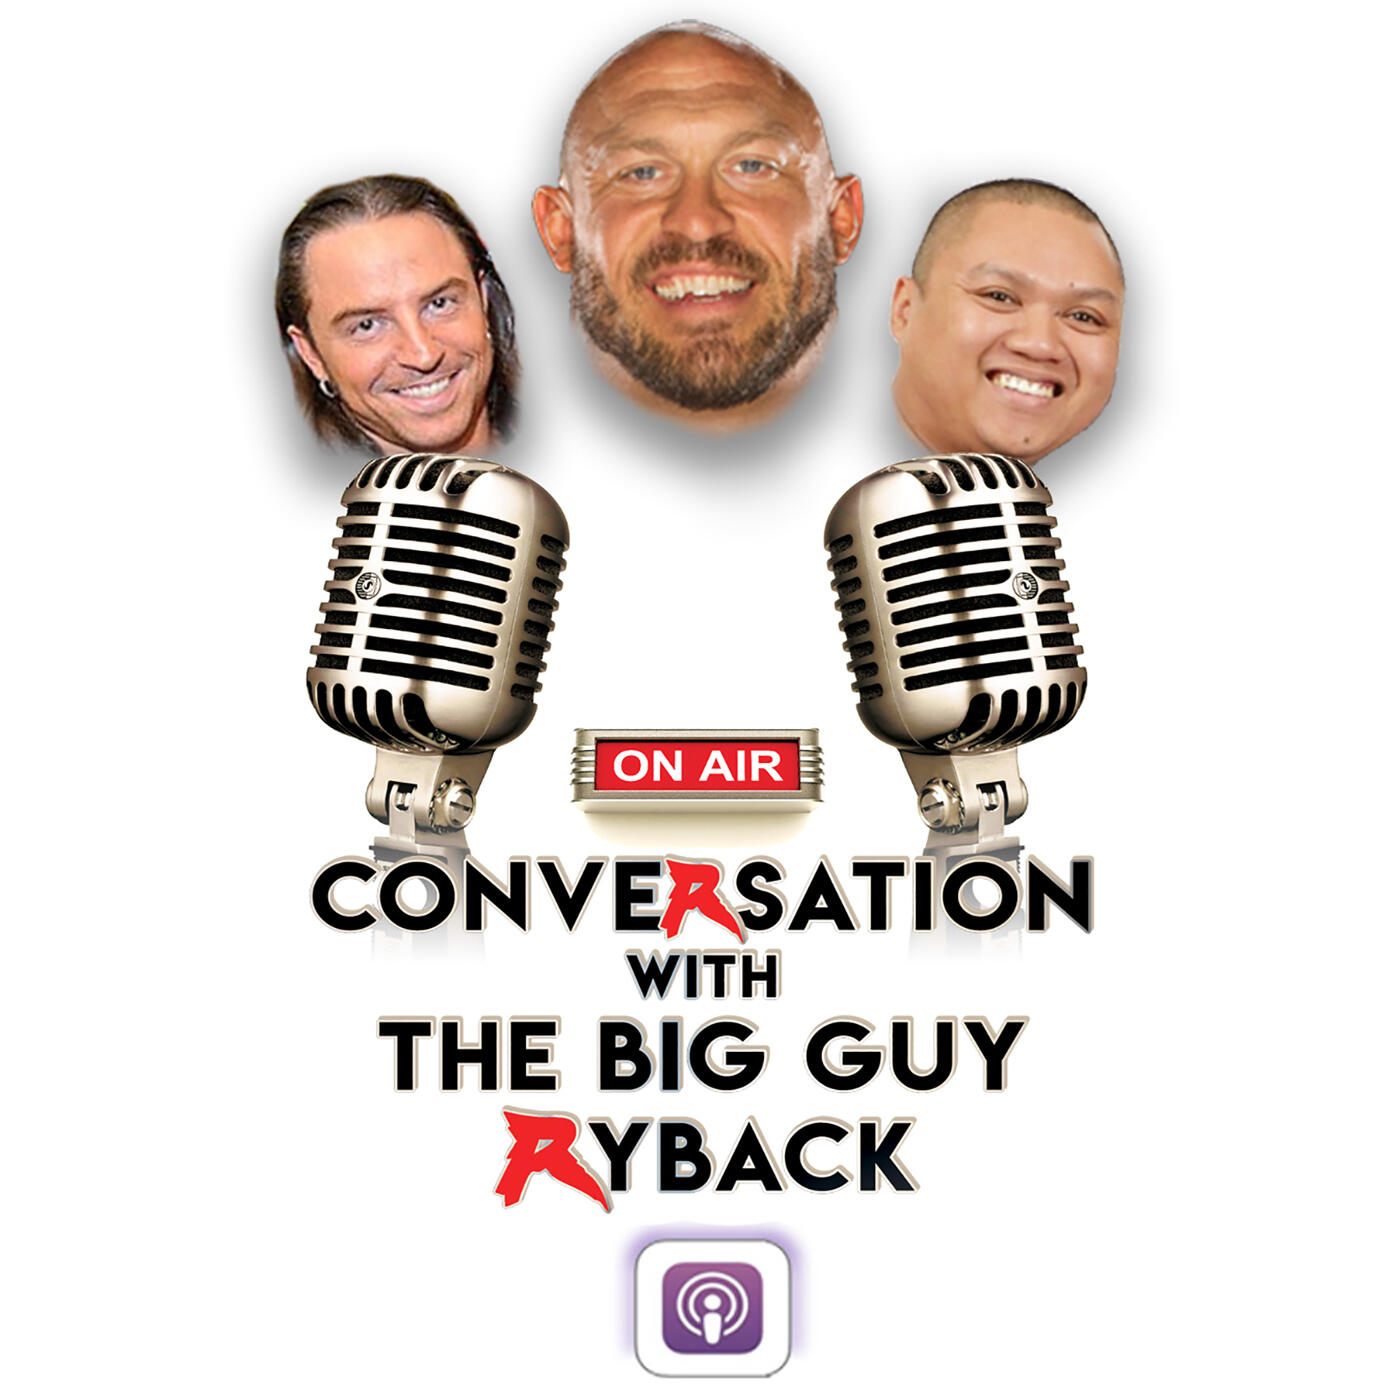 Listen Free to Conversation with the Big Guy Ryback on iHeartRadio Podcasts | iHeartRadio